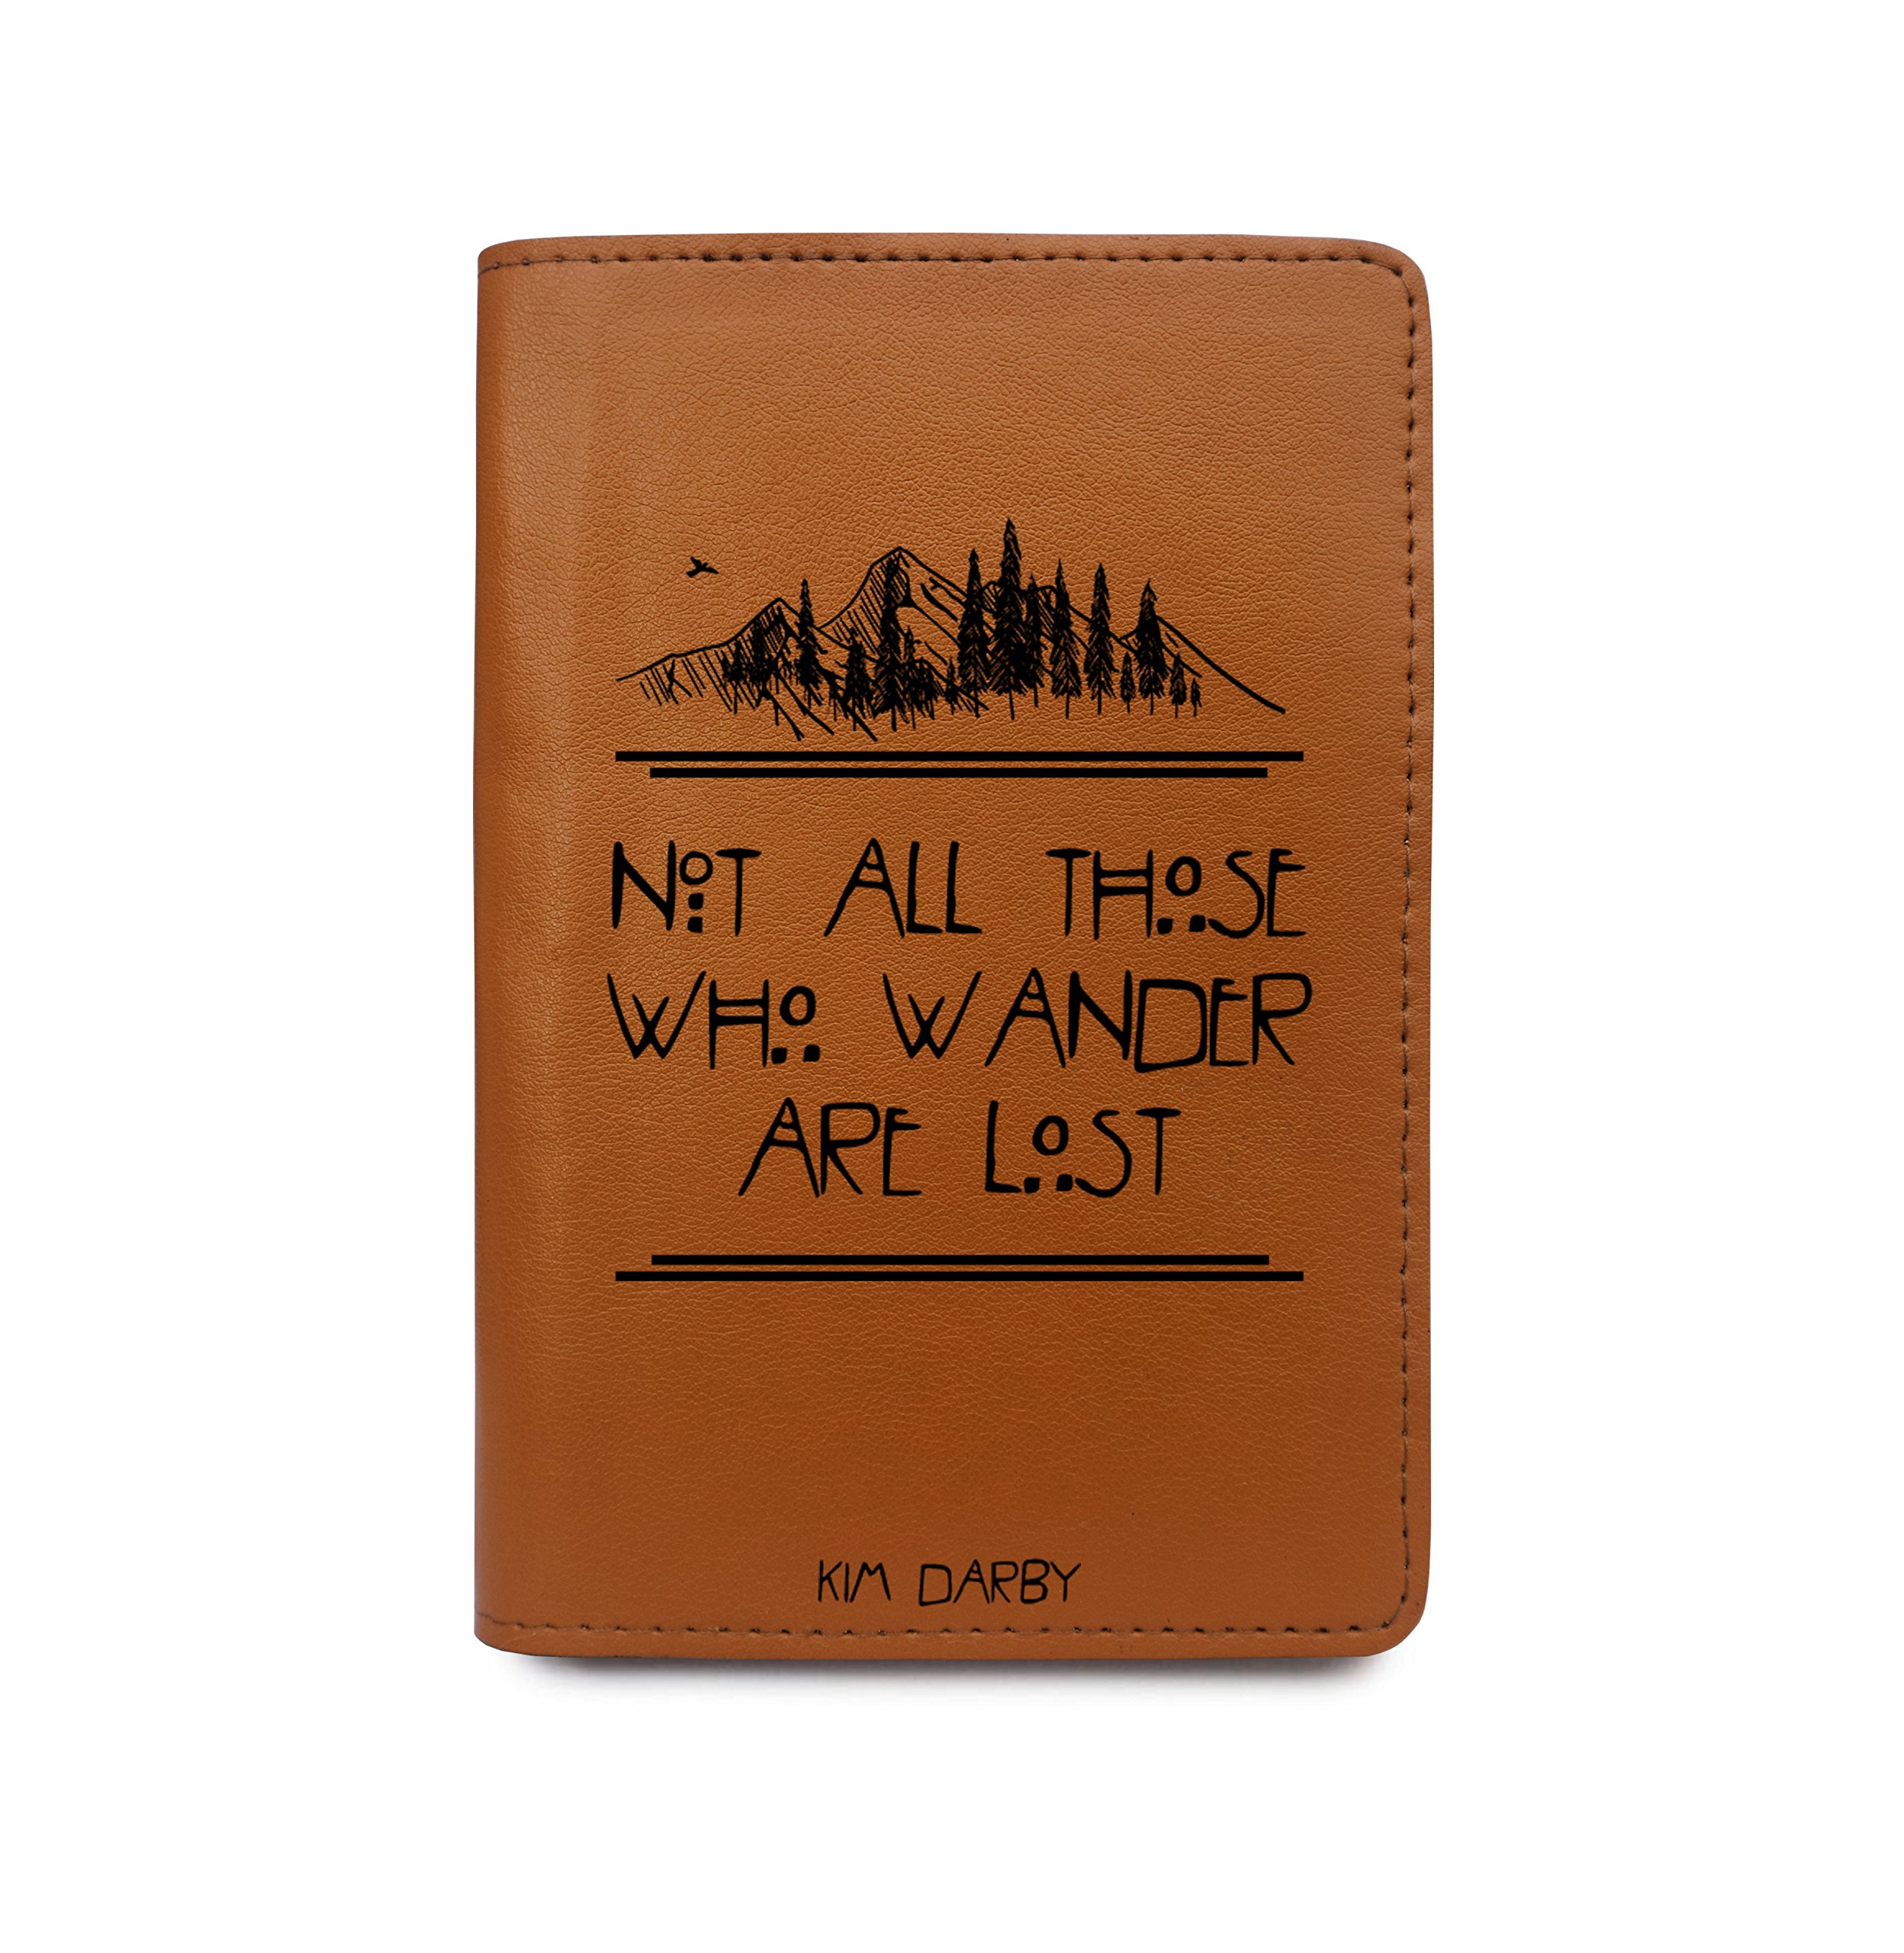 Custom Leather Passport Cover Wallet - Not All Those Who Wander Are Lost